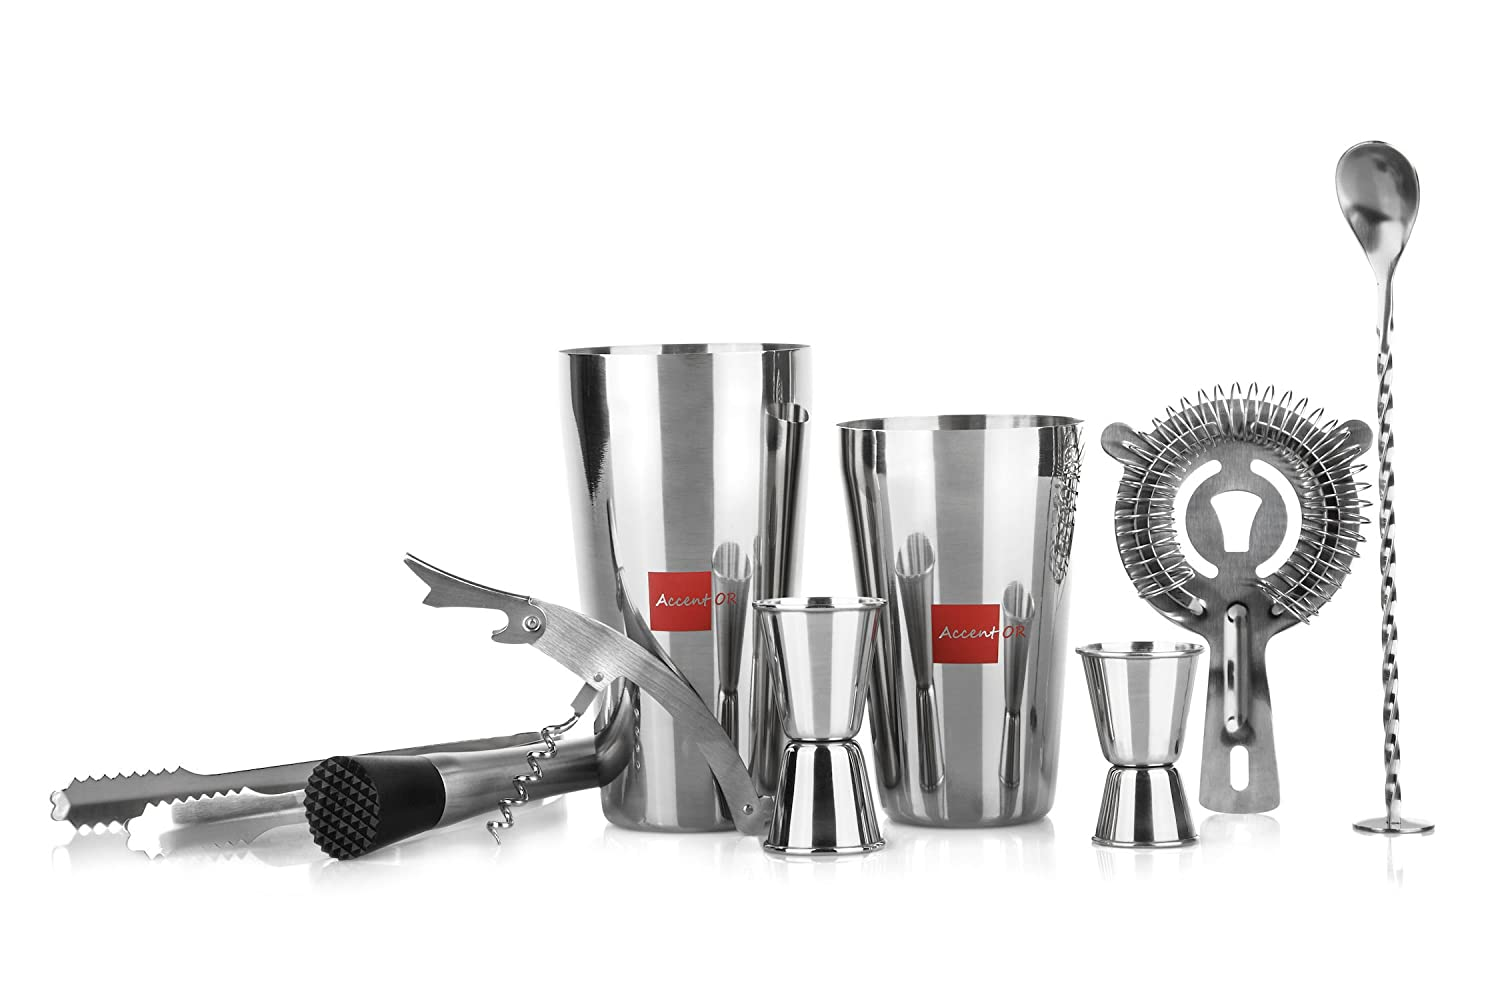 Stainless Steel Bartender Tool Kit: 9 Piece Bartending Set with 25.3 and 20.2 Ounce Cocktail Shaker Tins, 2 measuring Jiggers, Hawthorne Strainer, Mixing Spoon, Muddler, Ice Tongs and Corkscrew Tool